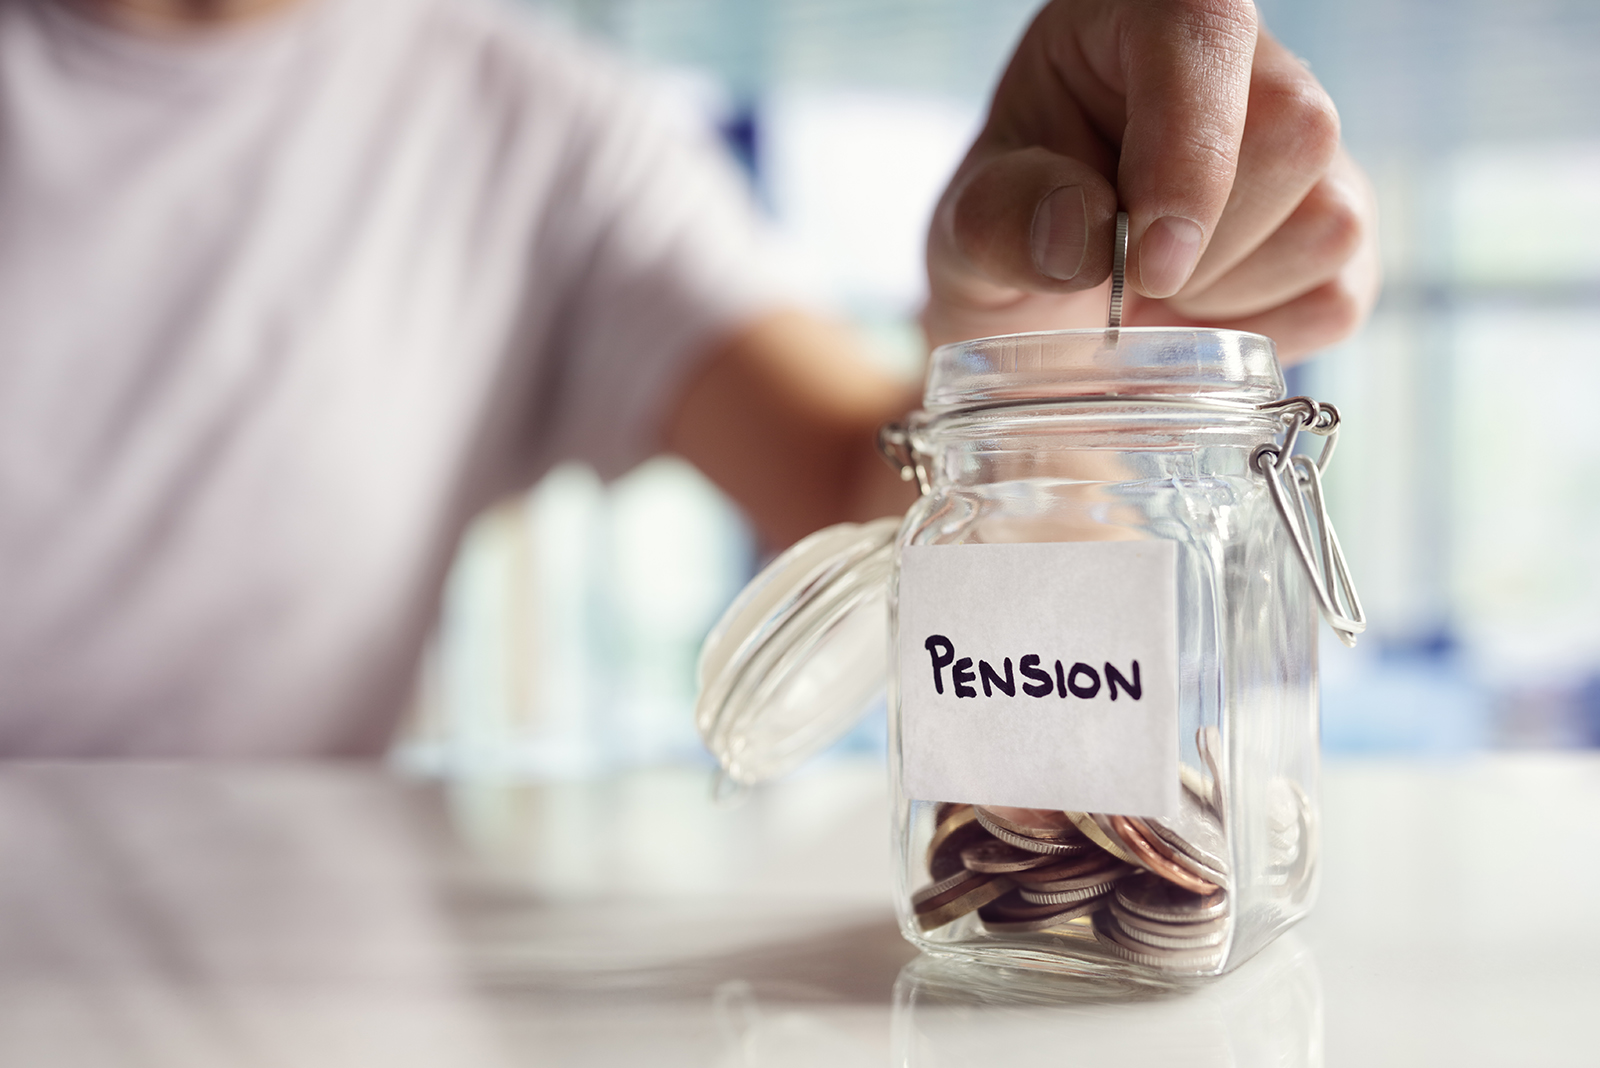 Pension Awareness Day: expert advice for tradespeople on how to prepare for retirement